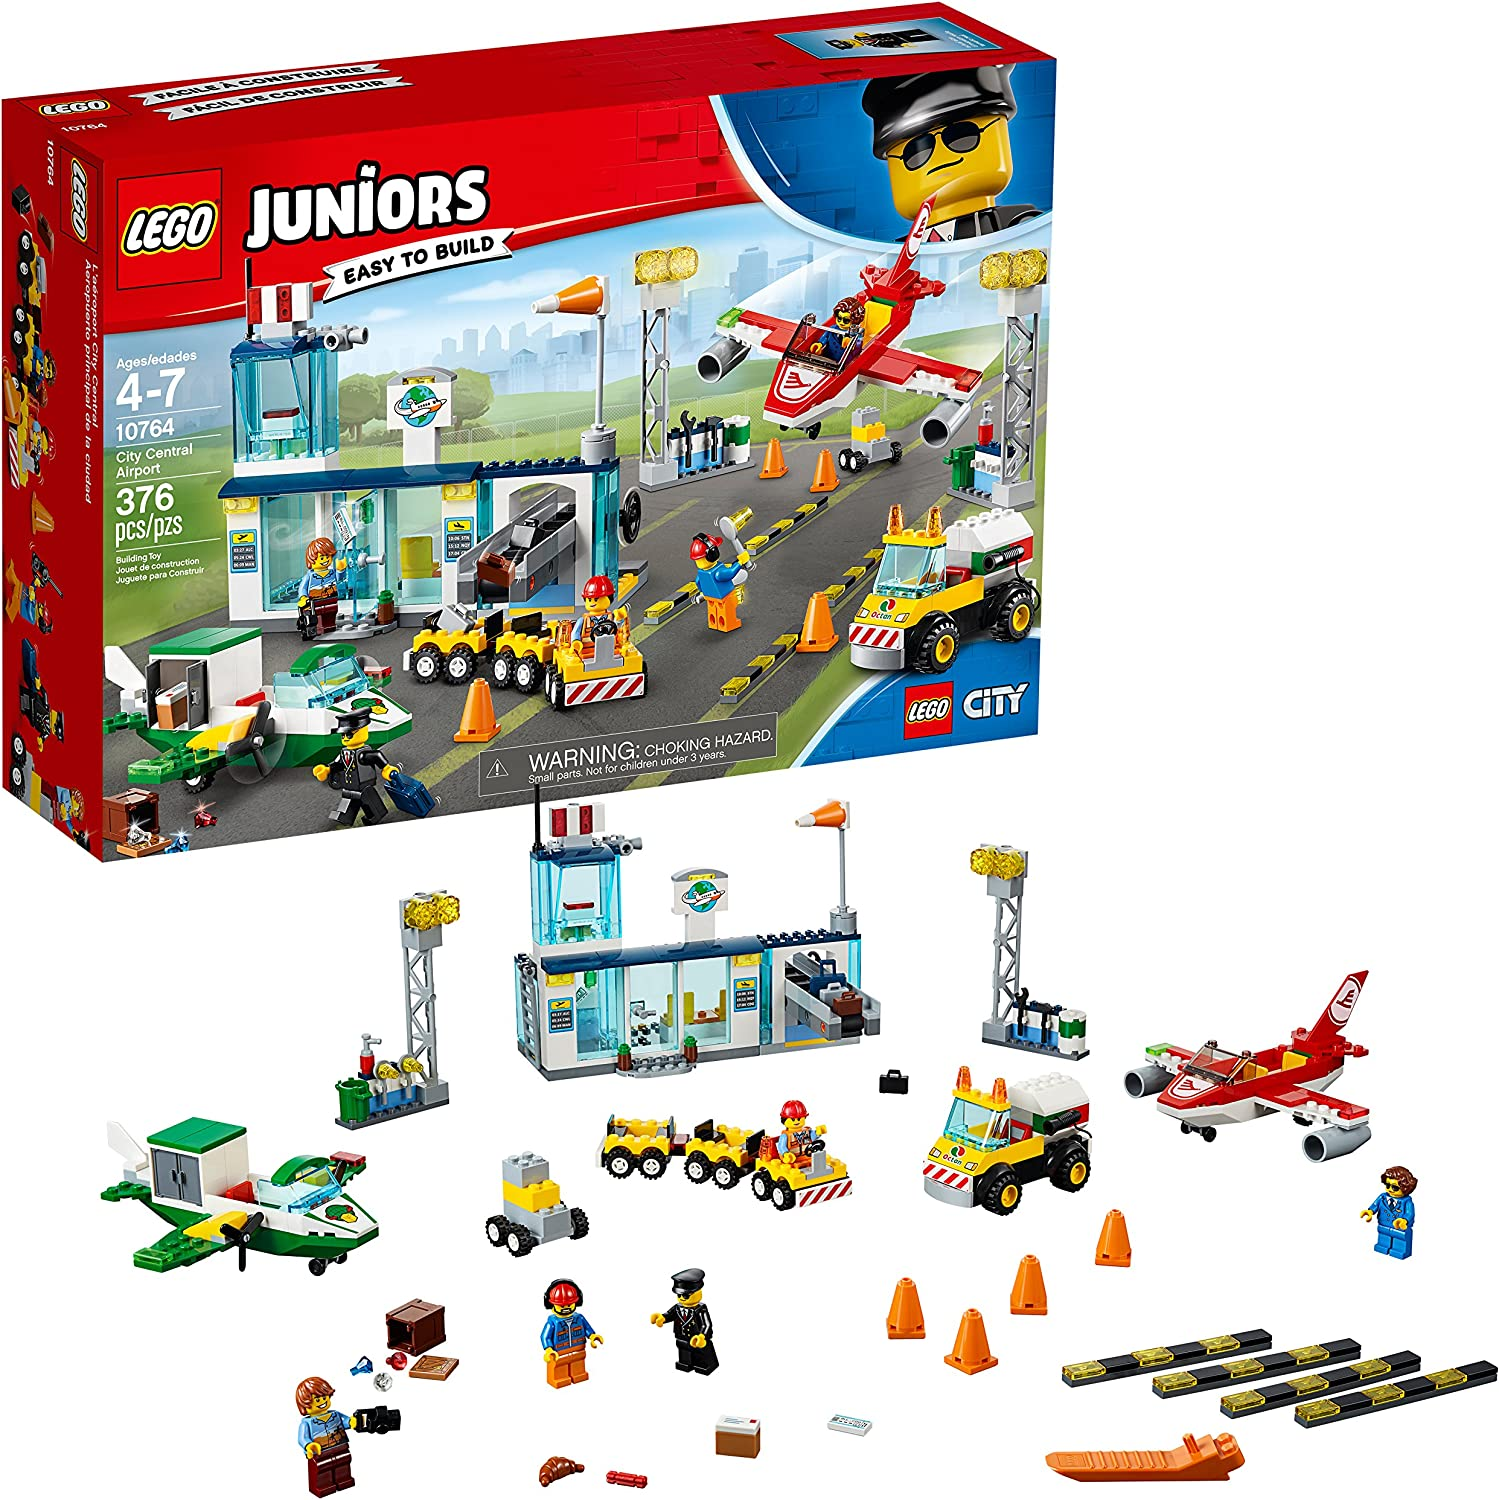 50+ Best Gift Ideas & Toys for 4 Year Old Boys (2020 Updated) 32